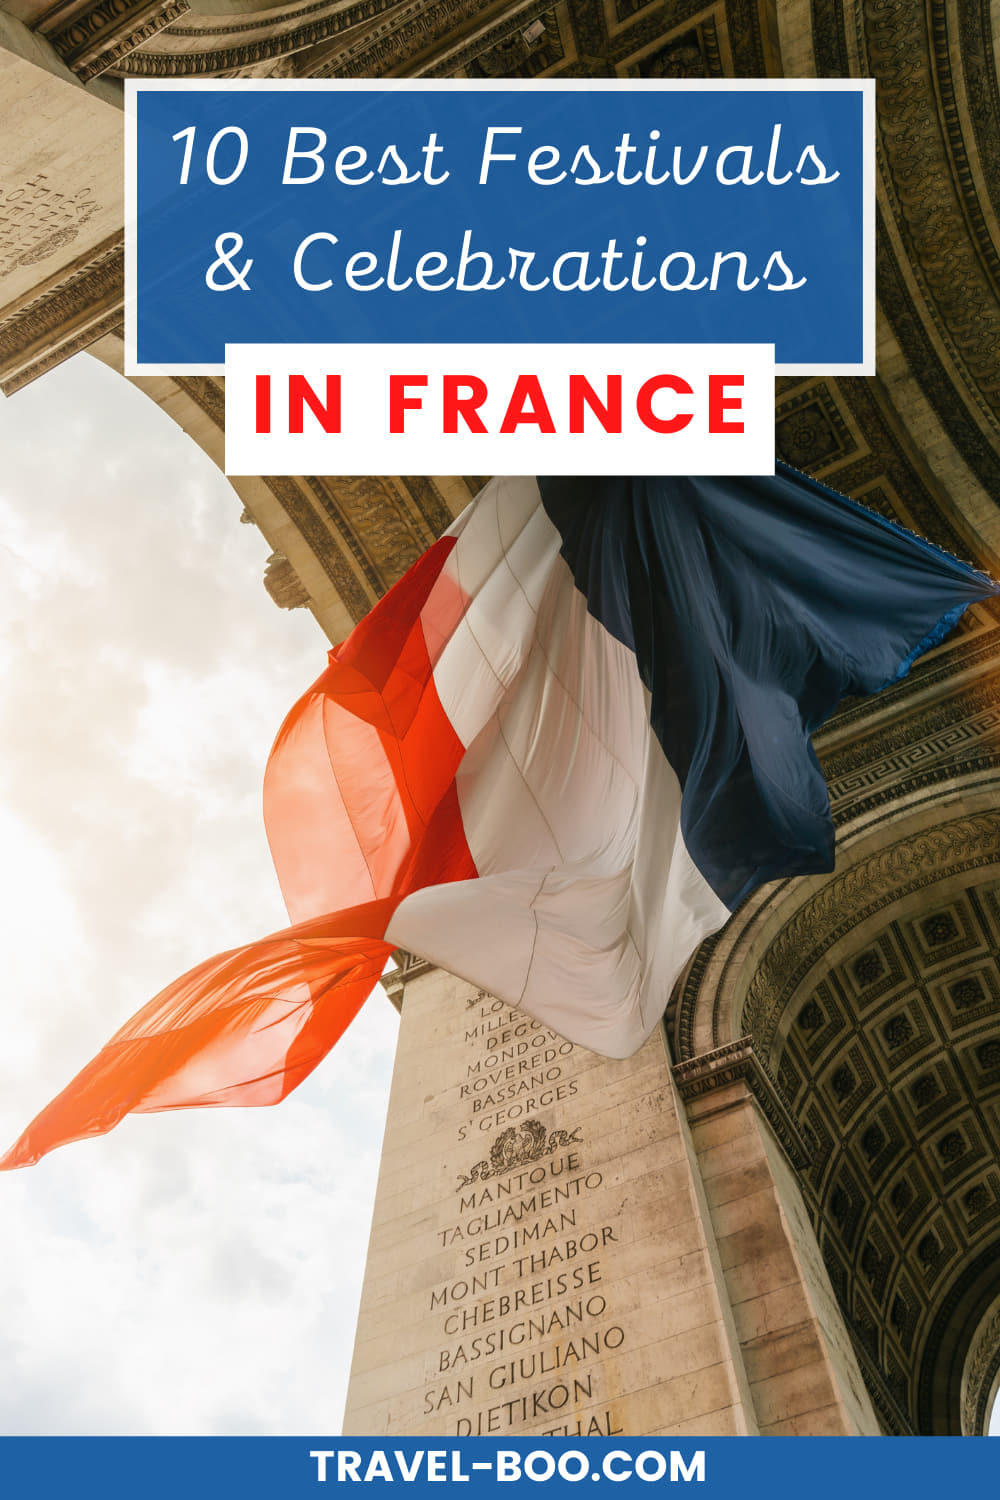 10 Best Festivals & Celebrations in France to Enjoy! French Festivals, Events in France, Celebrations in France, France Festivals, France Travel Guide, France Travel Itinerary